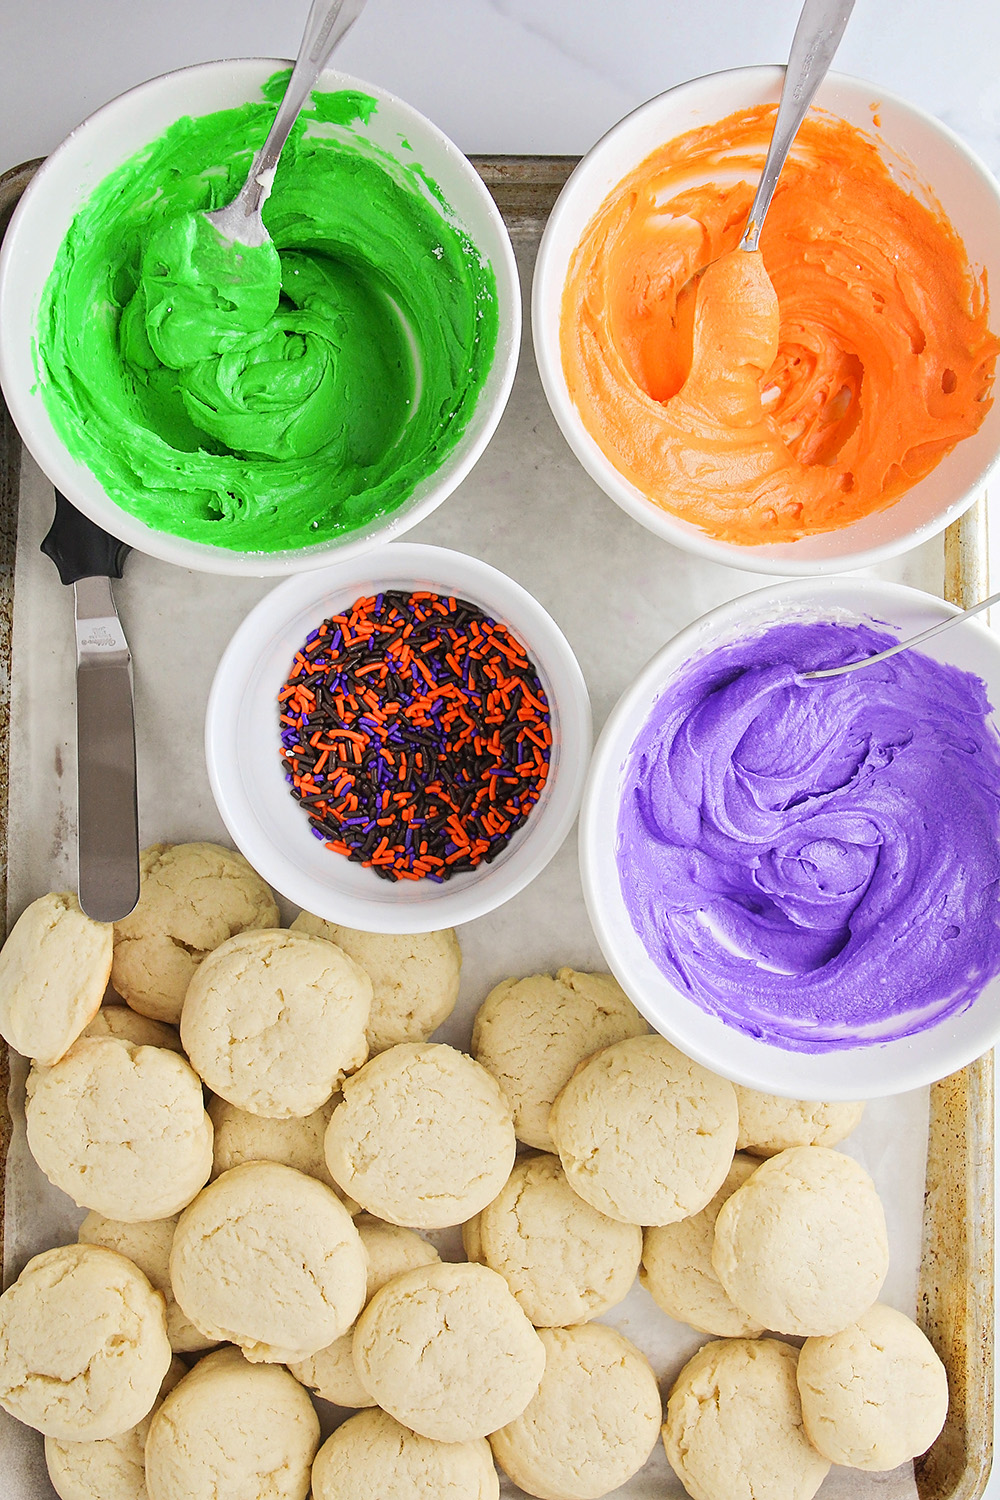 These soft Halloween sugar cookies have the best flavor and texture, and are so quick and easy to make!